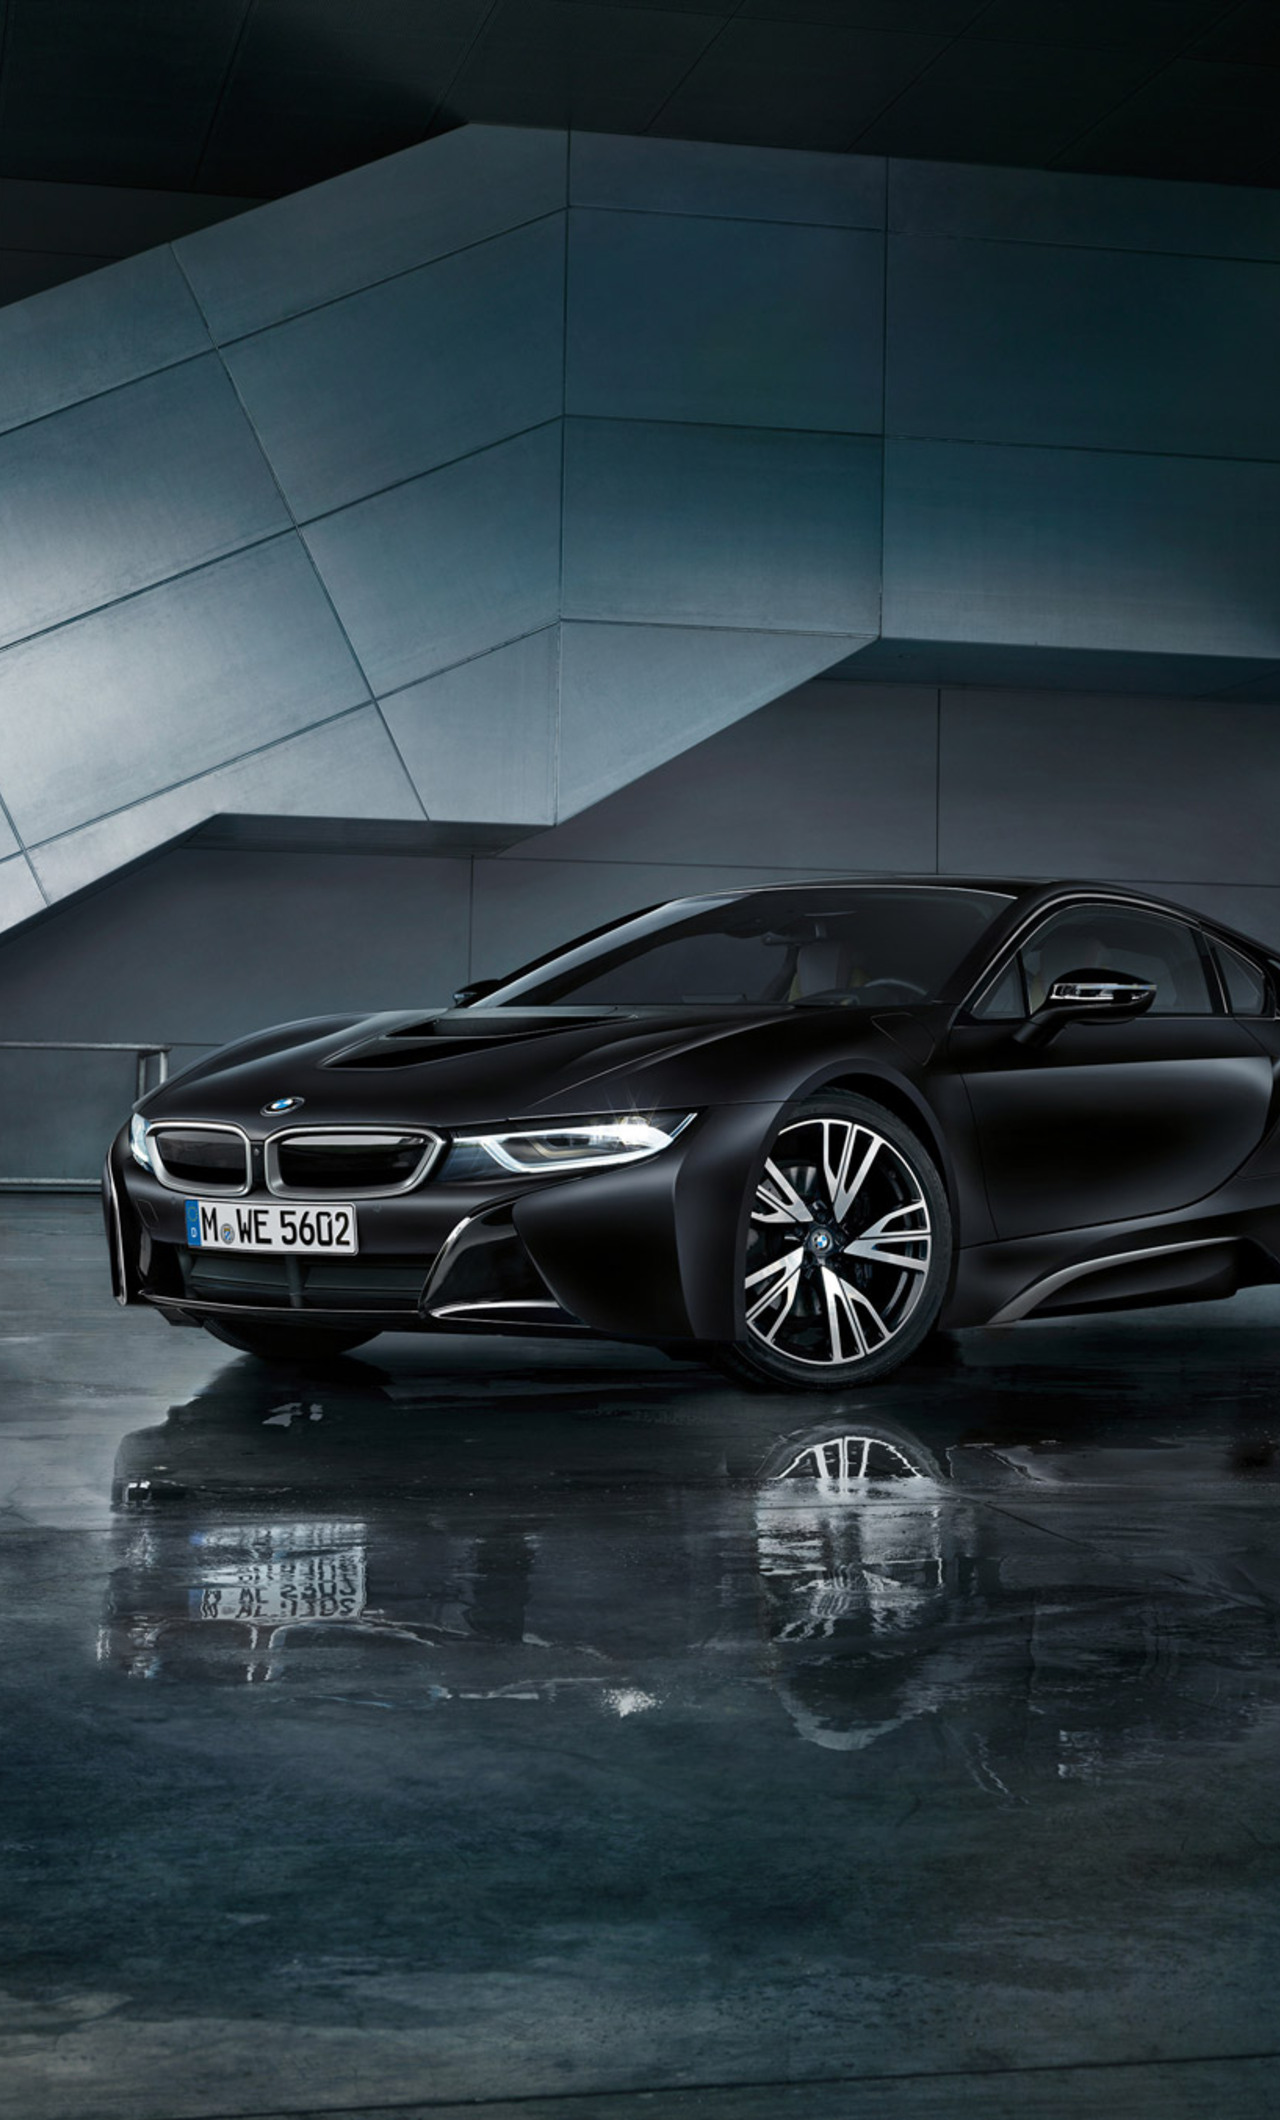 1280x2120 Bmw I8 Black 2018 Iphone 6 Hd 4k Wallpapers Images